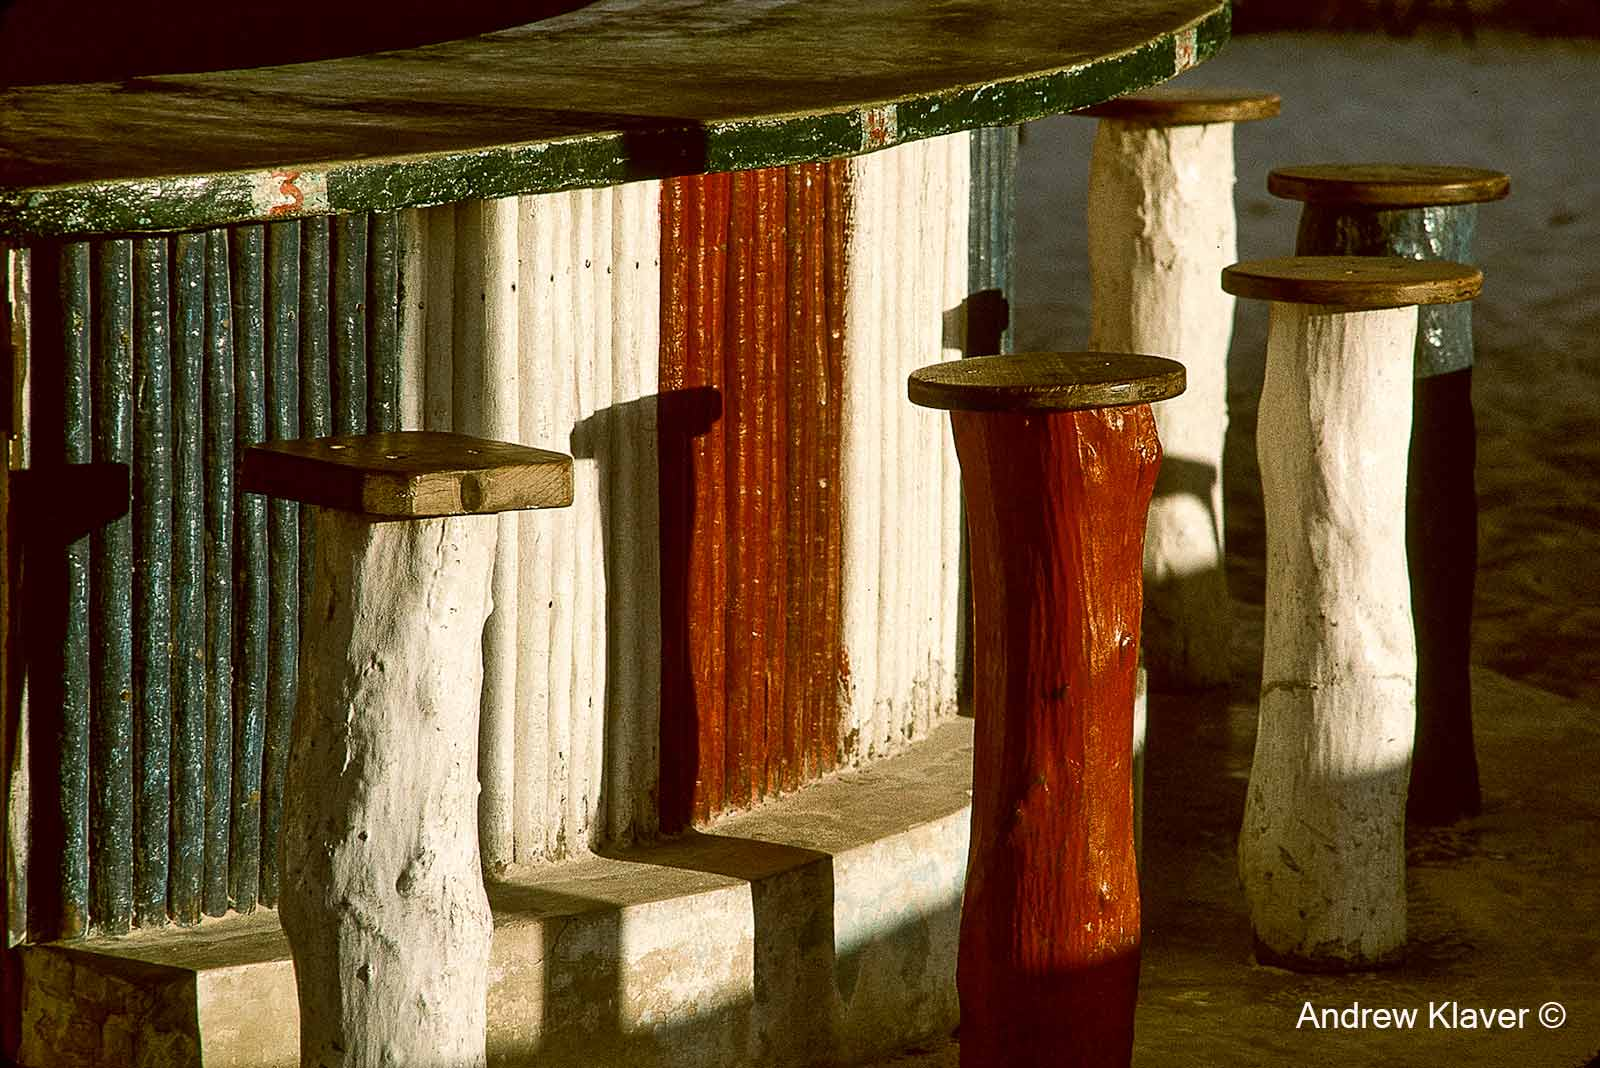 Playa del Carmen, bar stools, 1989